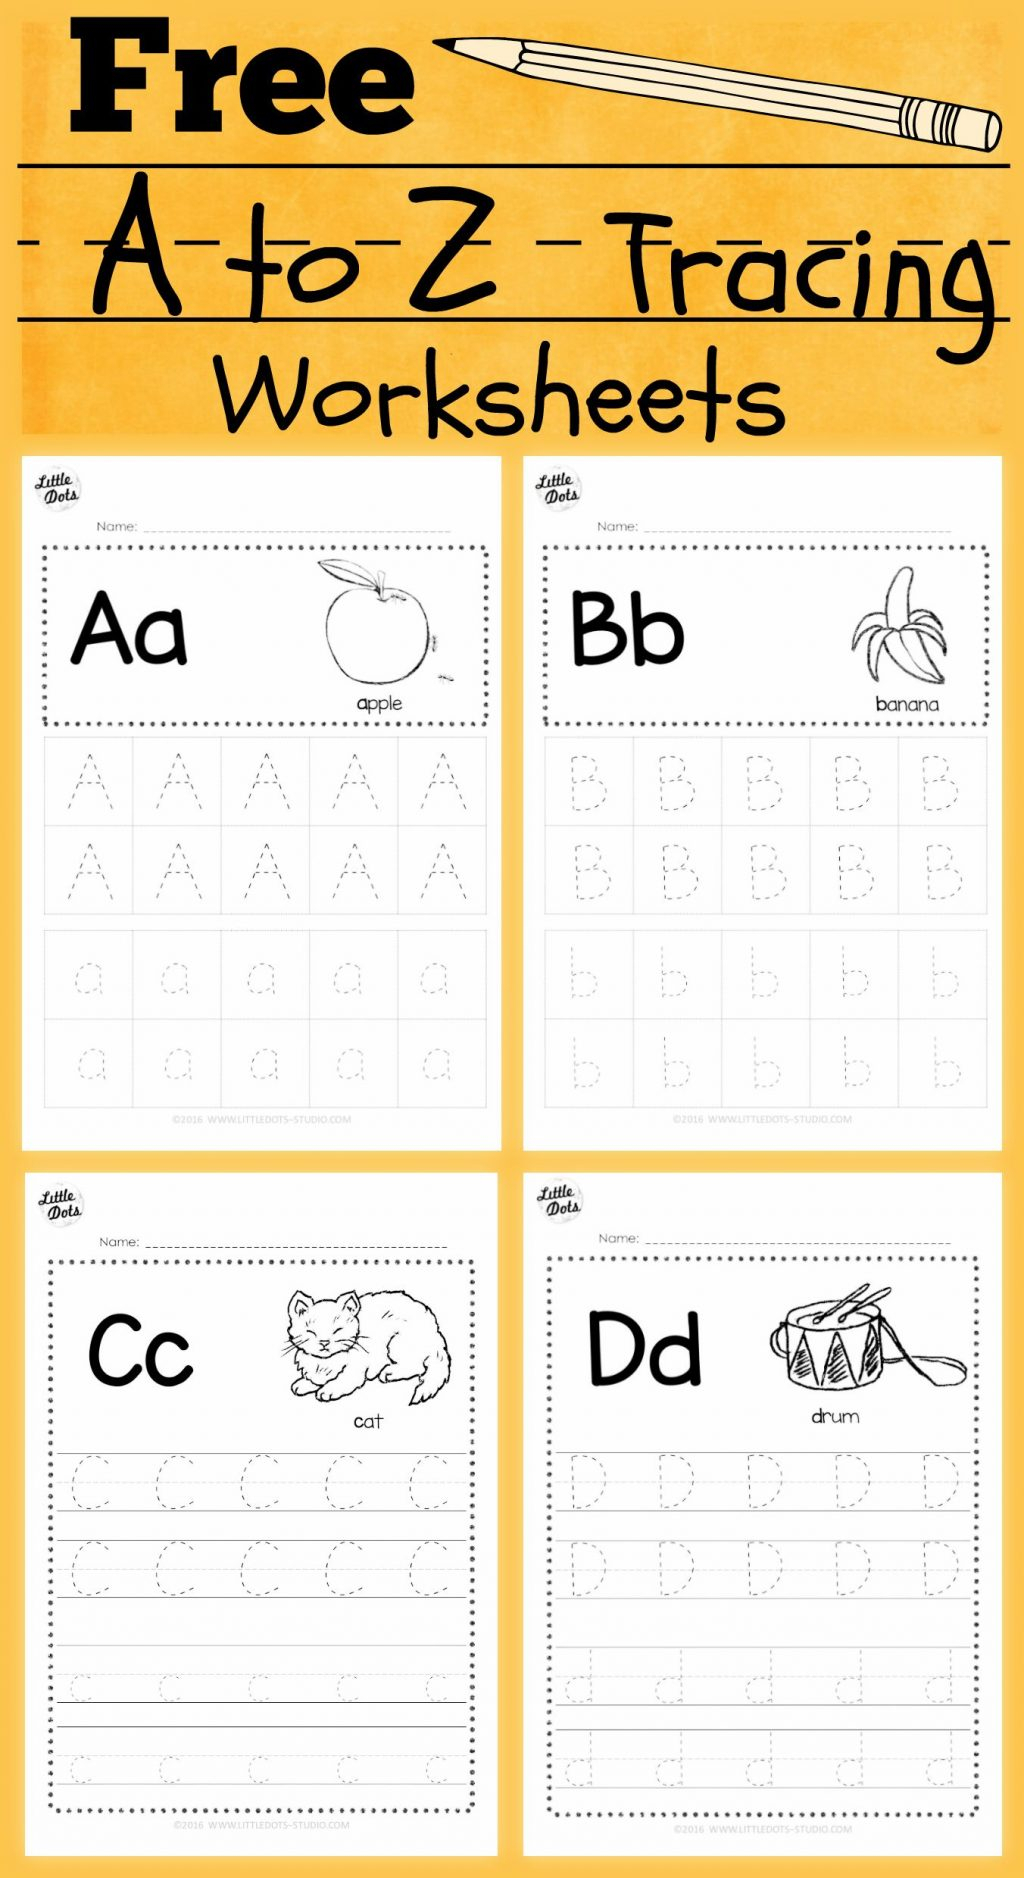 Download Free Alphabet Tracing Worksheets For Letter To Z for Alphabet Tracing Letters Font